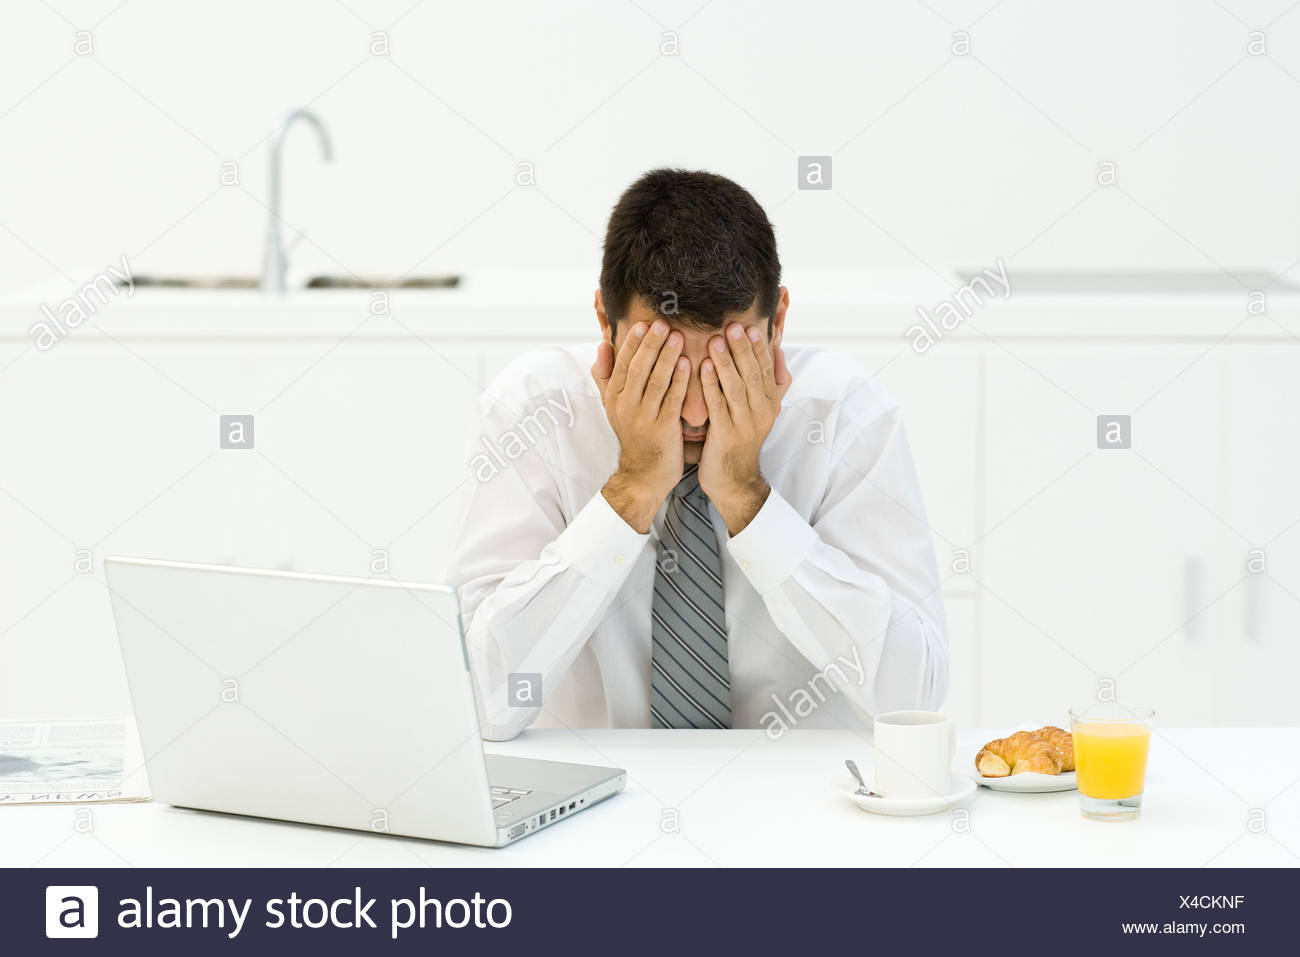 Man sitting next to breakfast and laptop, covering face with hands - Stock Image